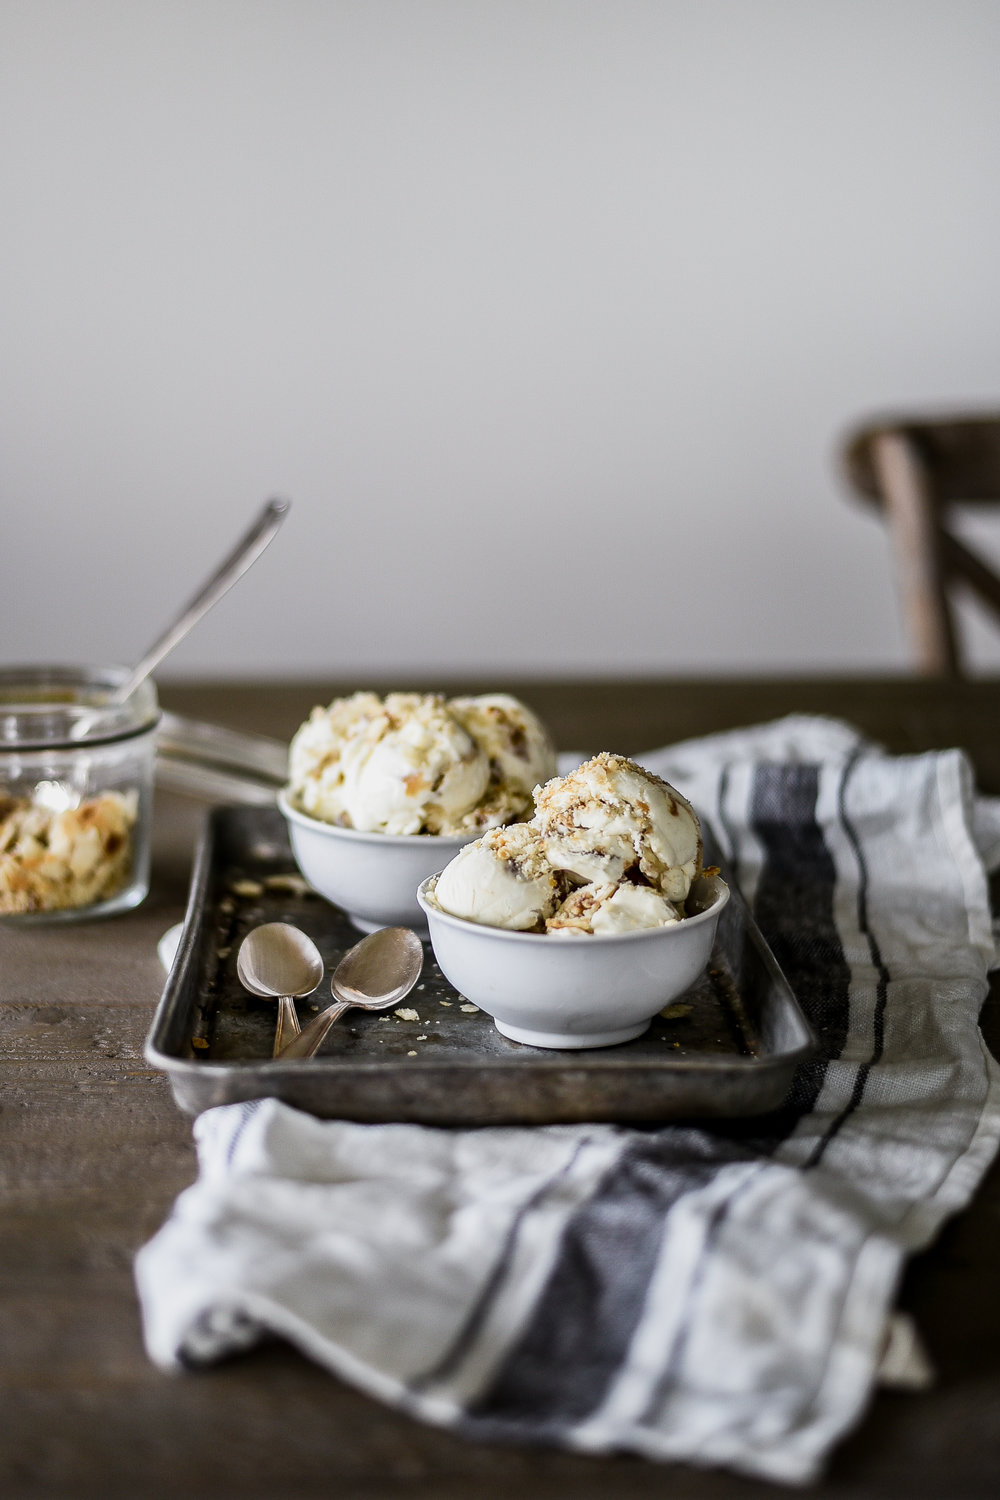 A yummy fall dessert with brown sugar, apples, and pie crust: no-churn apple pie ice cream from boxwoodavenue.com